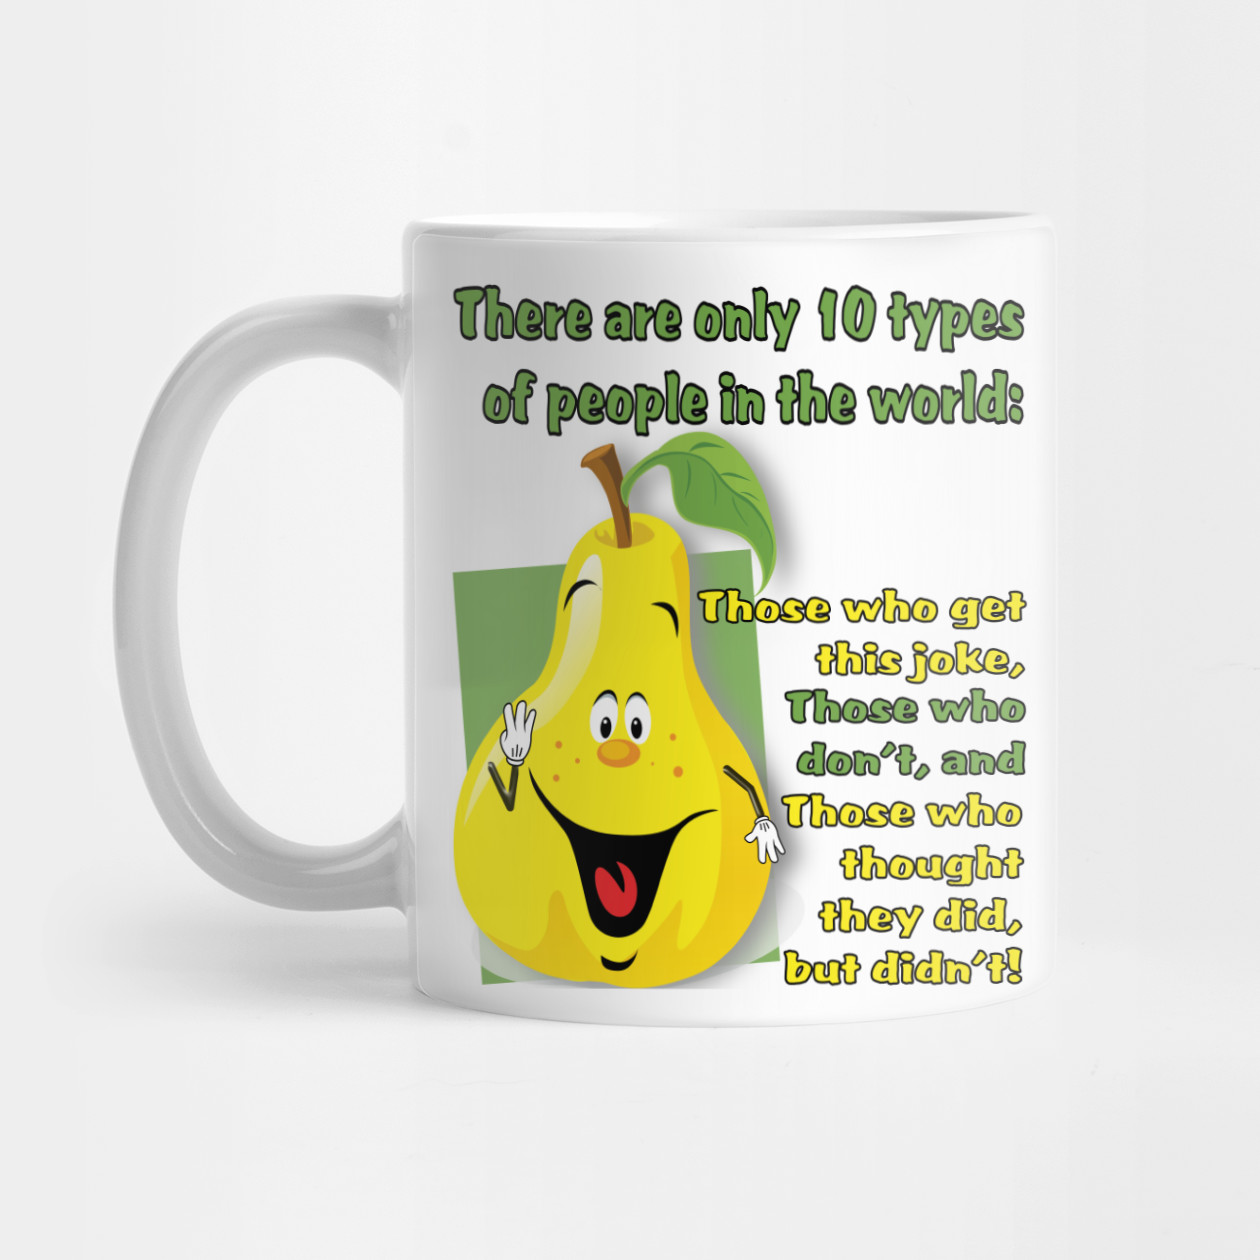 10-types-of-people-mug